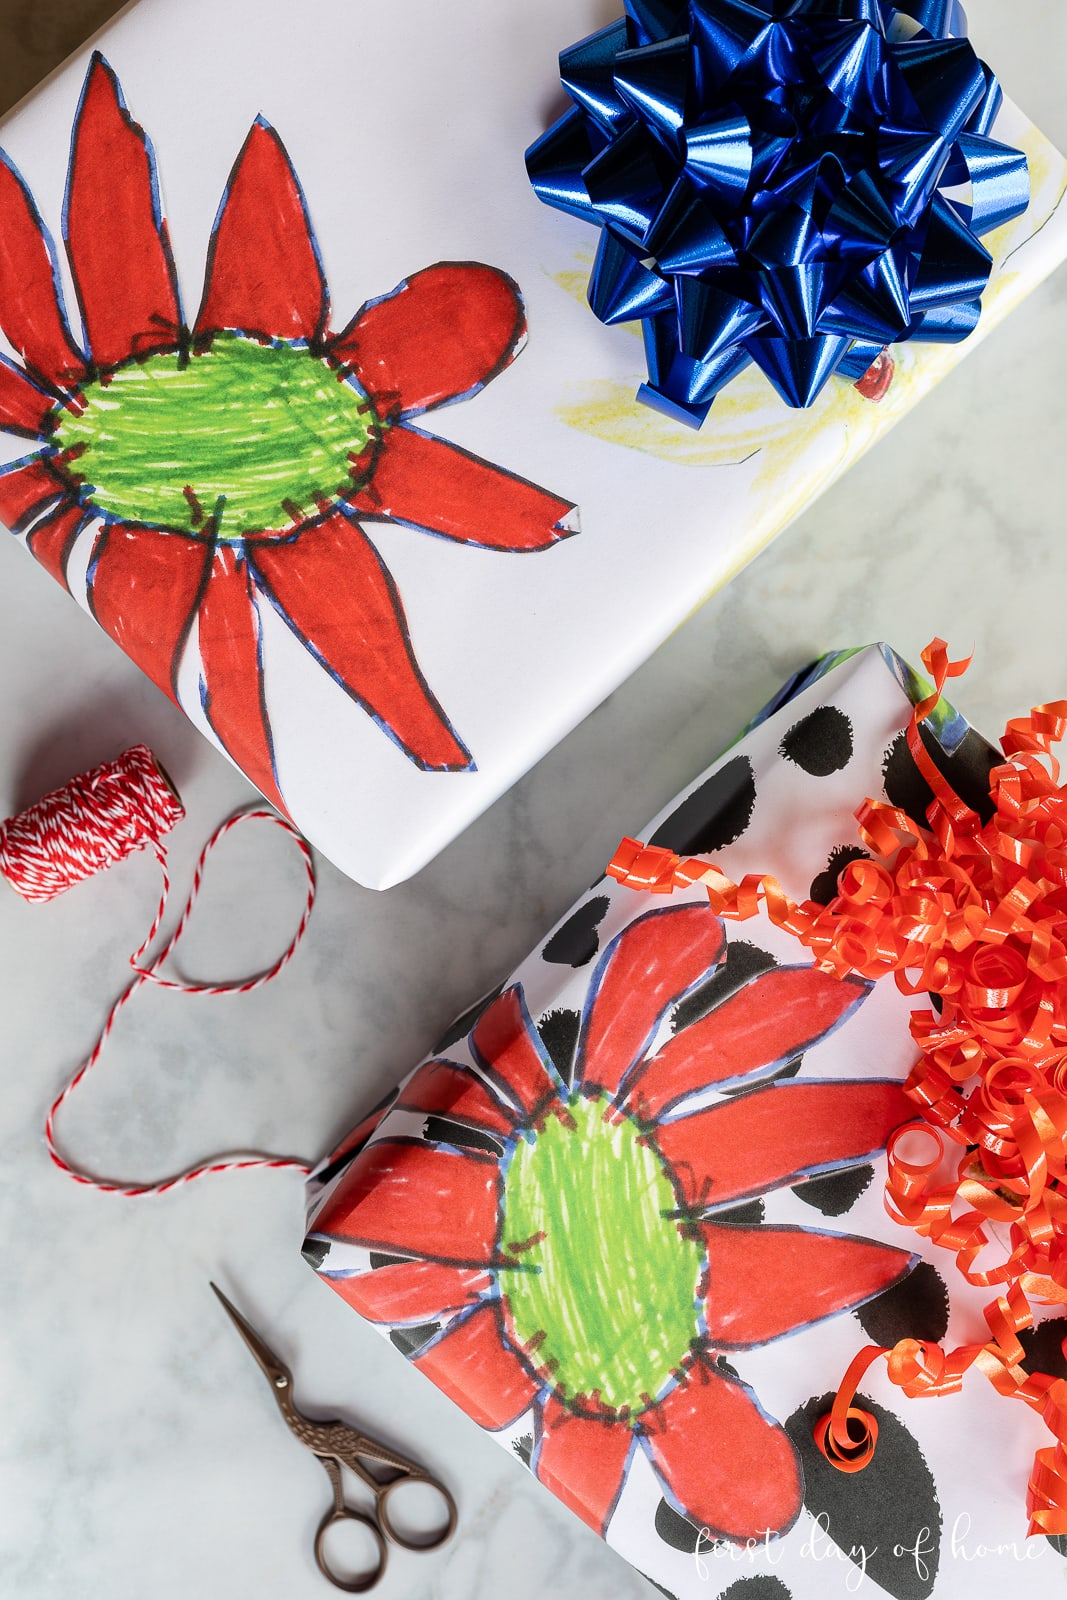 Presents wrapped in colorful wrapping paper with flower pattern made with art from kids